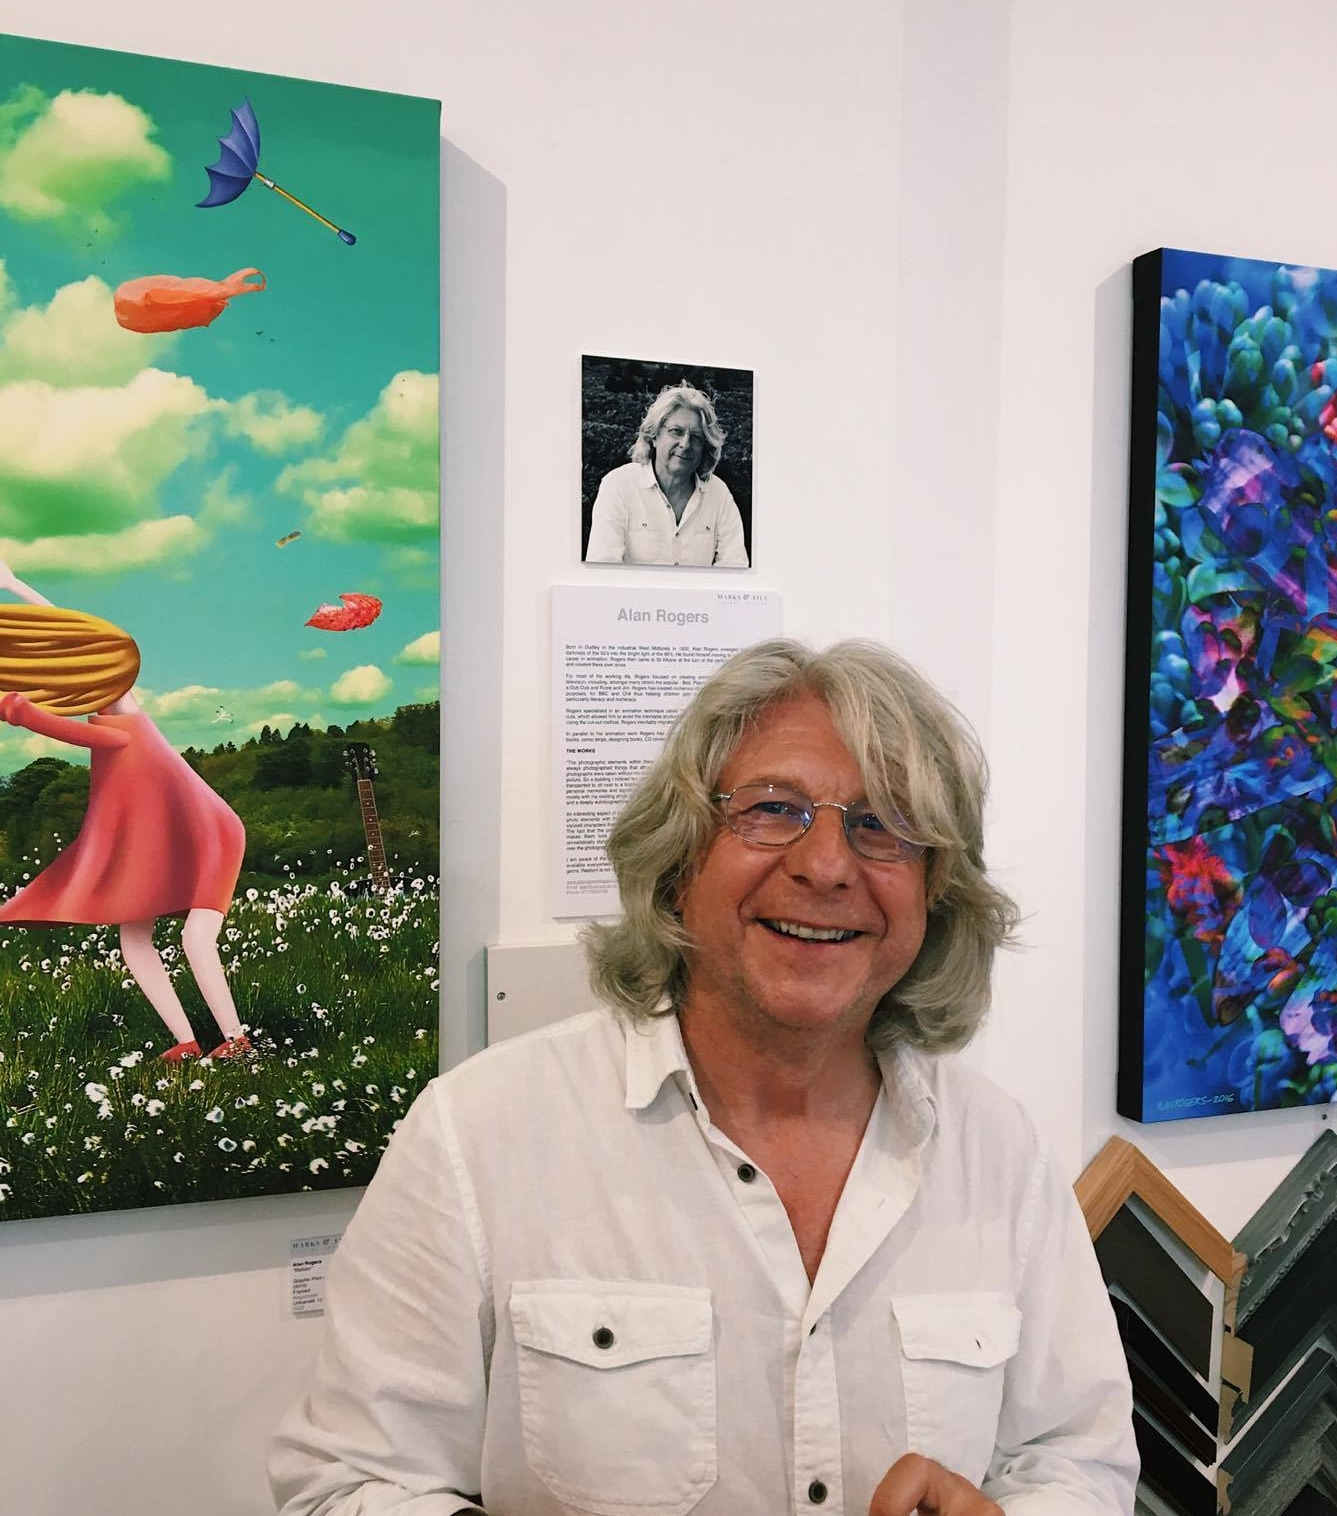 """Alan Rogers7th - 25th July 2017 - Born in Dudley in the industrial West Midlands in 1952, Alan Rogers emerged from the darkness of the 50's into the bright light of the 60's, He found himself moving to London for a career in animation. Rogers then came to St Albans at the turn of the century and has lived and created there ever since.For most of his working life, Rogers focused on creating animated films for children's television, including, amongst many others the popular - Bod, Pigeon Street, The Flumps, Rub-a-Dub-Dub and Rosie and Jim. Rogers has created numerous children's films, for educational purposes, for BBC and Ch4 thus helping children gain insights to many subjects but particularly literacy and numeracy.Rogers specialised in an animation technique called """"Cut-Out Animation"""" Working with cut-outs, which allowed him to avoid the inevitable production line aspect of the animation process. Using the cut-out method, Rogers inevitably migrated his whole practice onto computer.In parallel to his animation work Rogers has also illustrated (and often written) children's books, comic strips, designing books, CD covers, logos, character design, and photography.""""The photographic elements within these pieces are autobiographical by definition. I have always photographed things that attract my attention as I go about my life. Most of the photographs were taken without me being aware that they would later end up incorporated in a picture. So a building I noticed ten years ago in a particular place and time, could be lifted and transported to sit next to a building I noticed only two weeks ago. Both buildings would have personal memories and significance to me beyond their simple bricks and mortar. Working mostly with my existing photo archive limits the possibilities but adds an element of serendipity and a deeply autobiographical note to each picture.An interesting aspect of this process for me is experimenting with various ways to combine the photo elements with the """